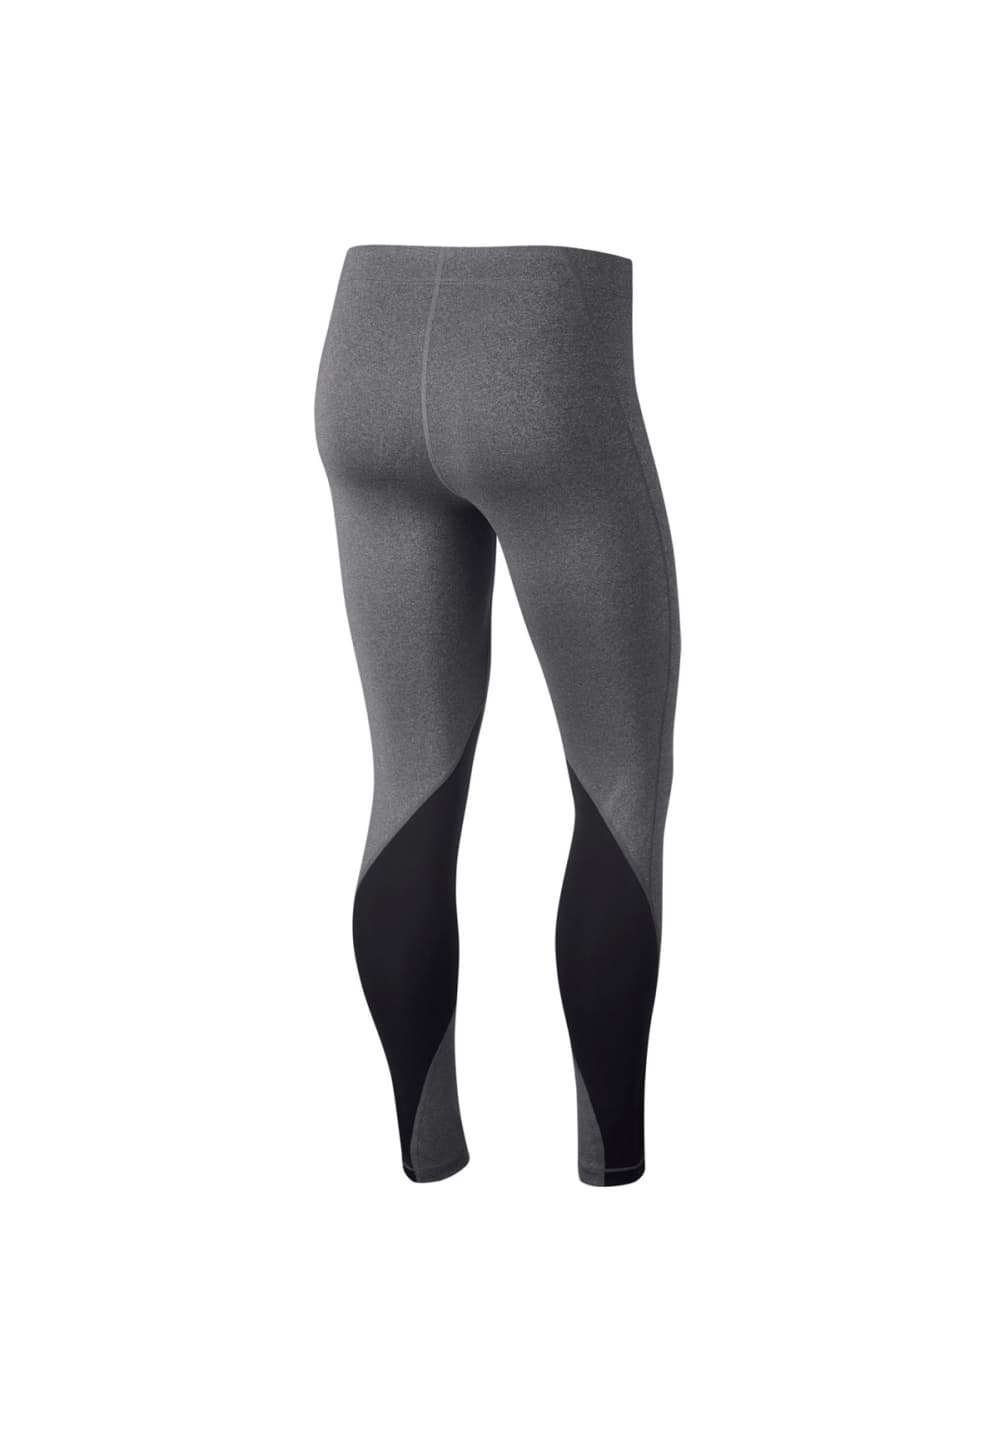 98c1ad27591fa ... Nike Pro Tight - Fitness trousers for Women - Grey. Back to Overview.  1; 2. Previous